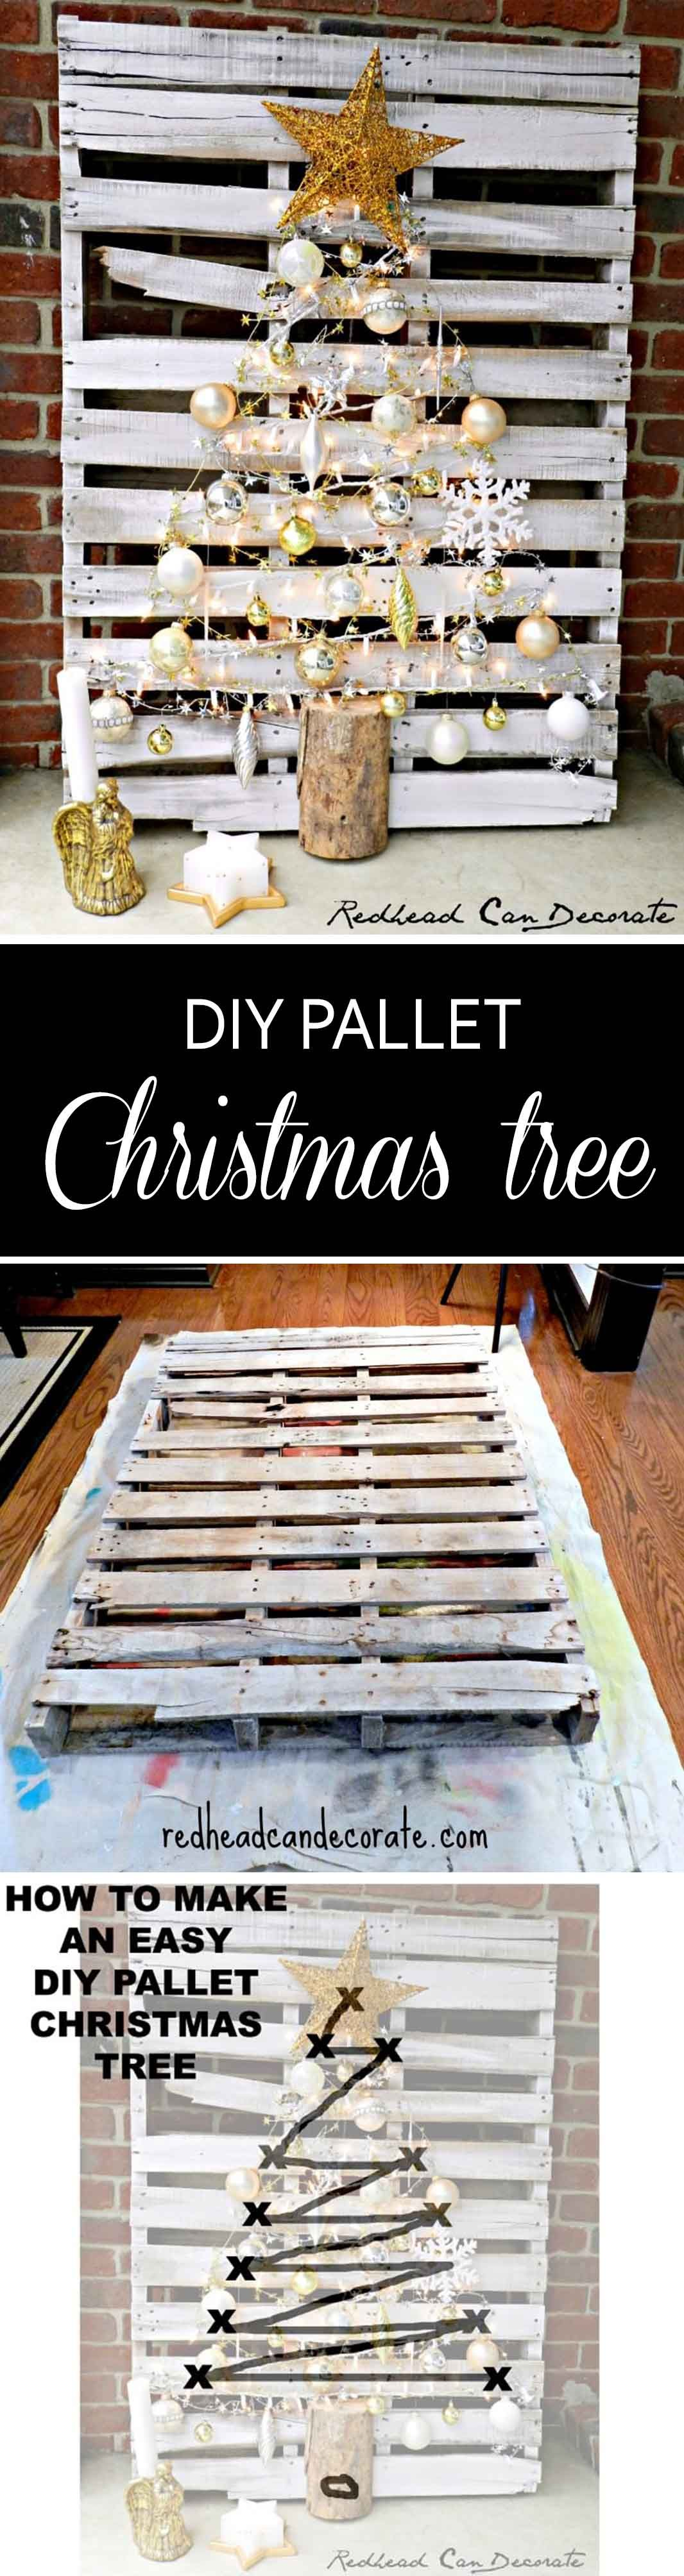 Merry DIY Pallet Christmas Tree